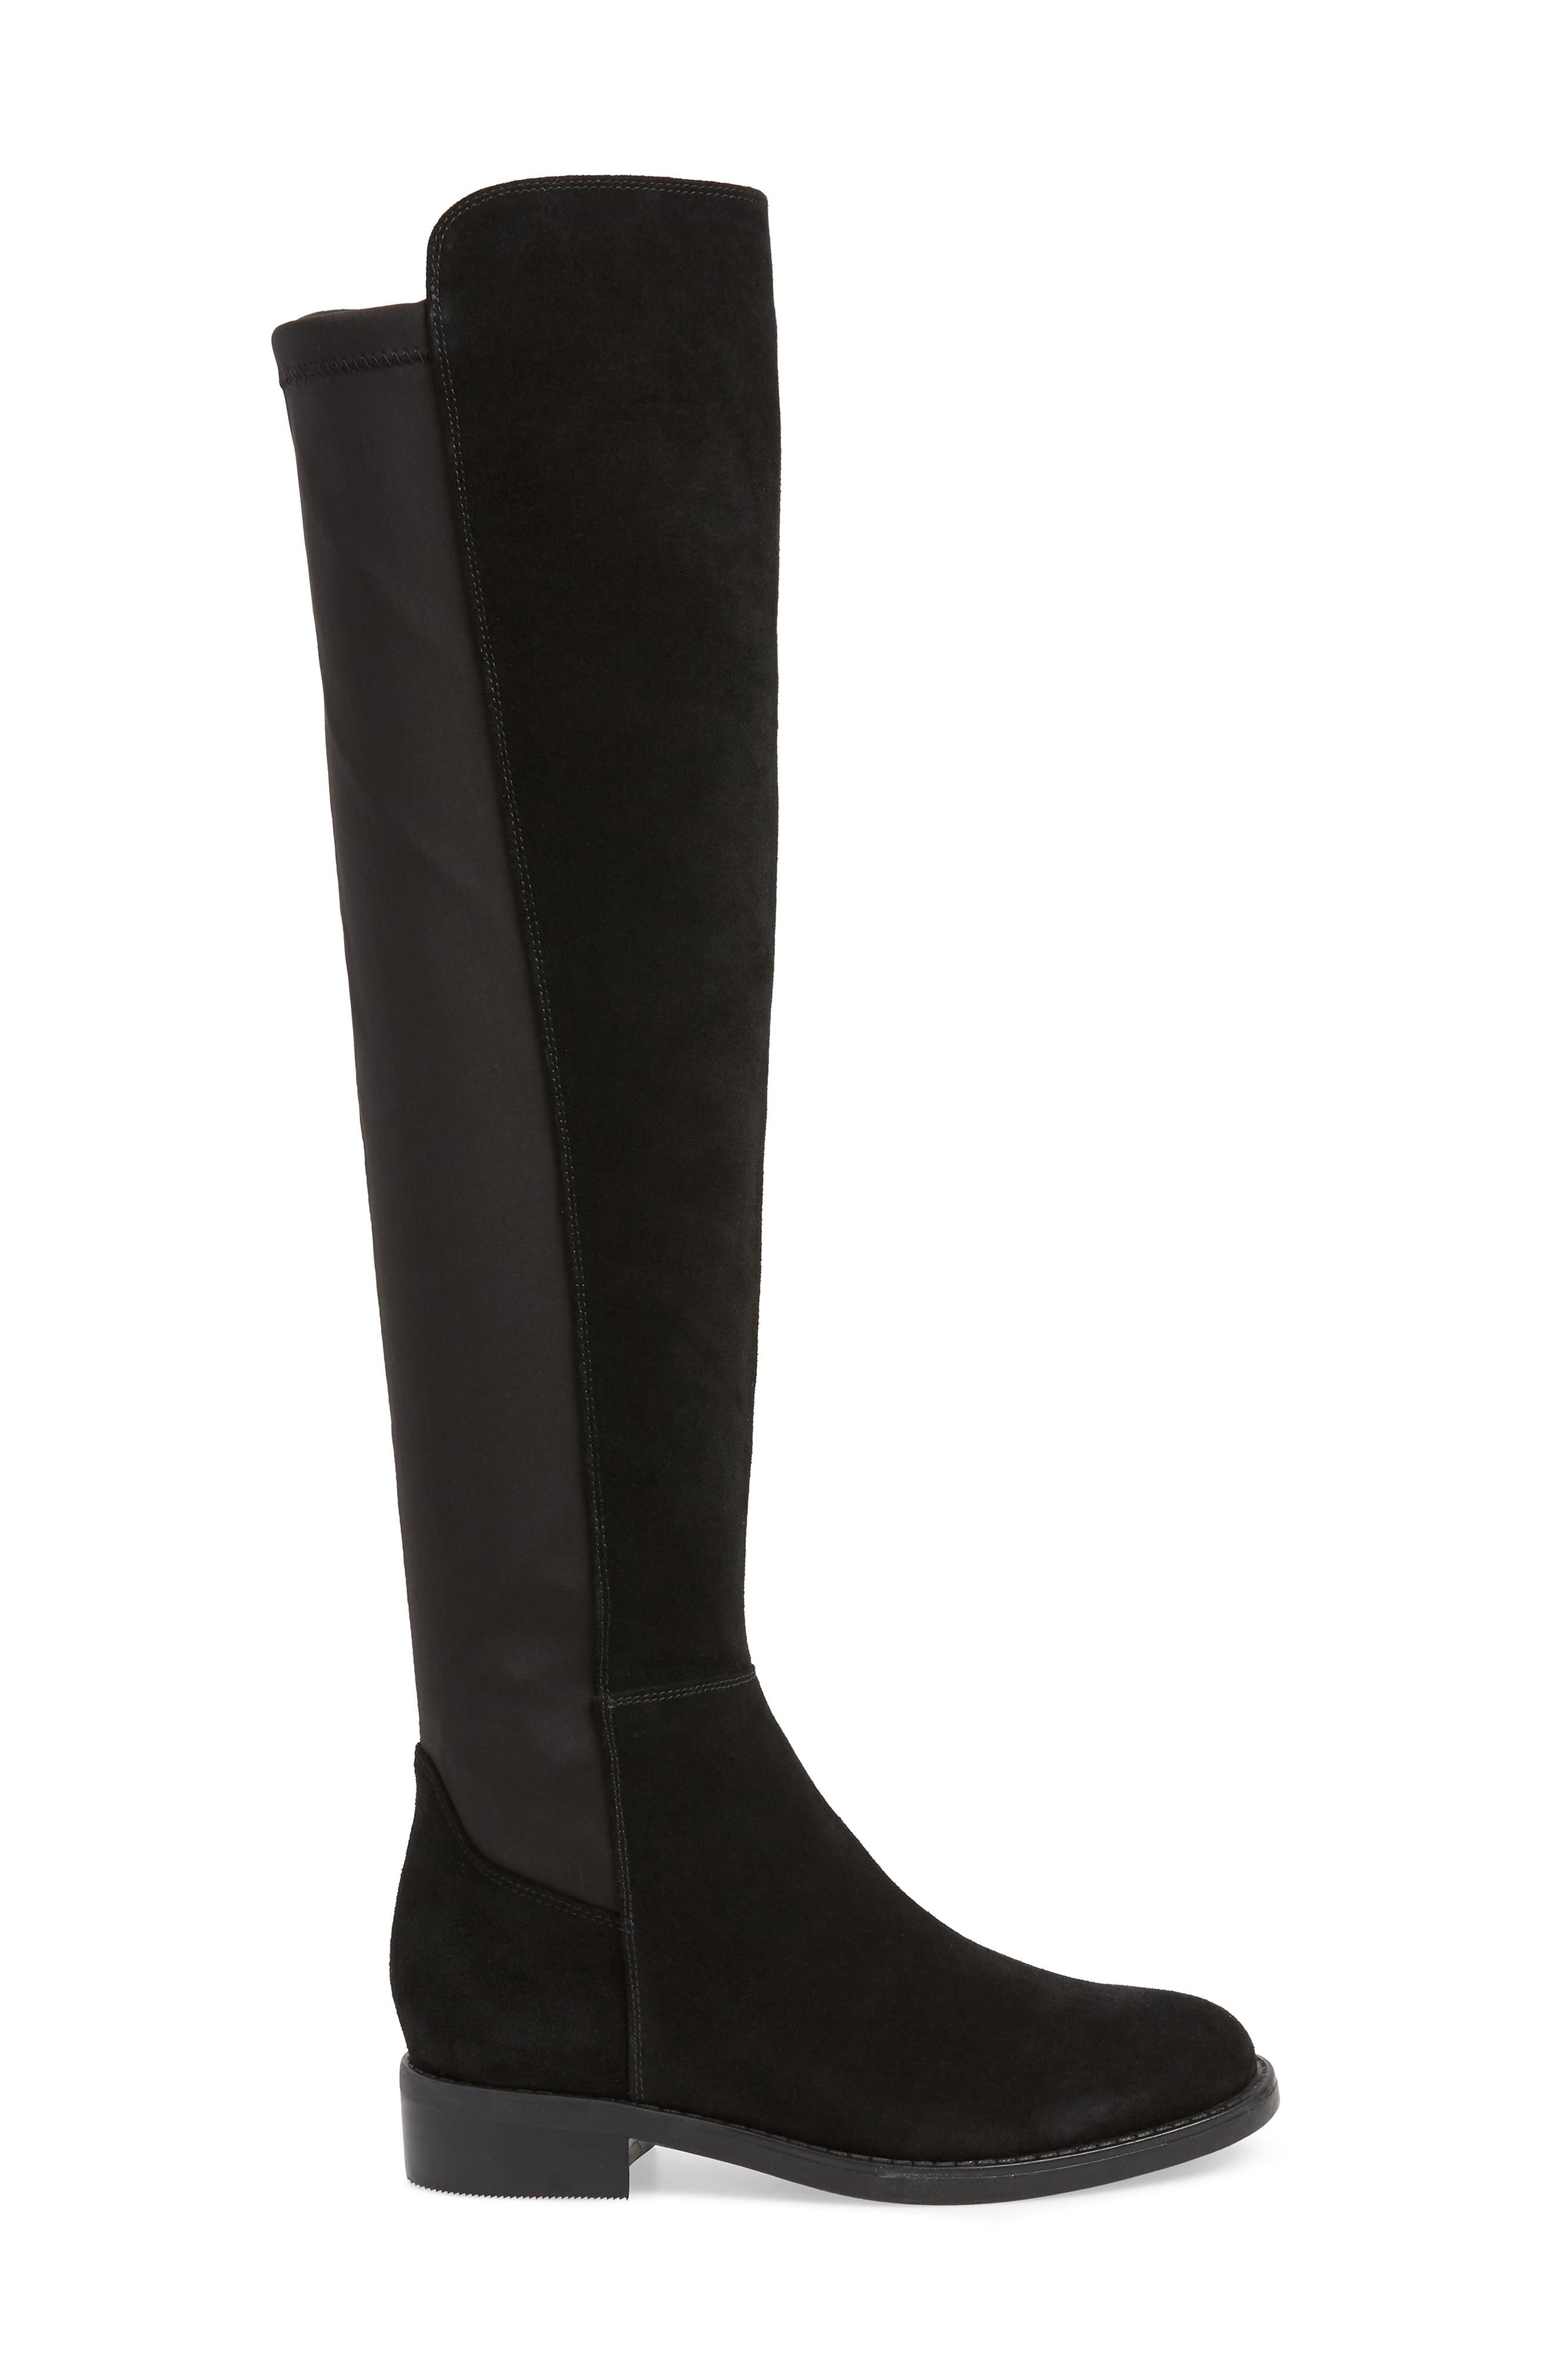 BLONDO, Danny Over the Knee Waterproof Boot, Alternate thumbnail 3, color, 001